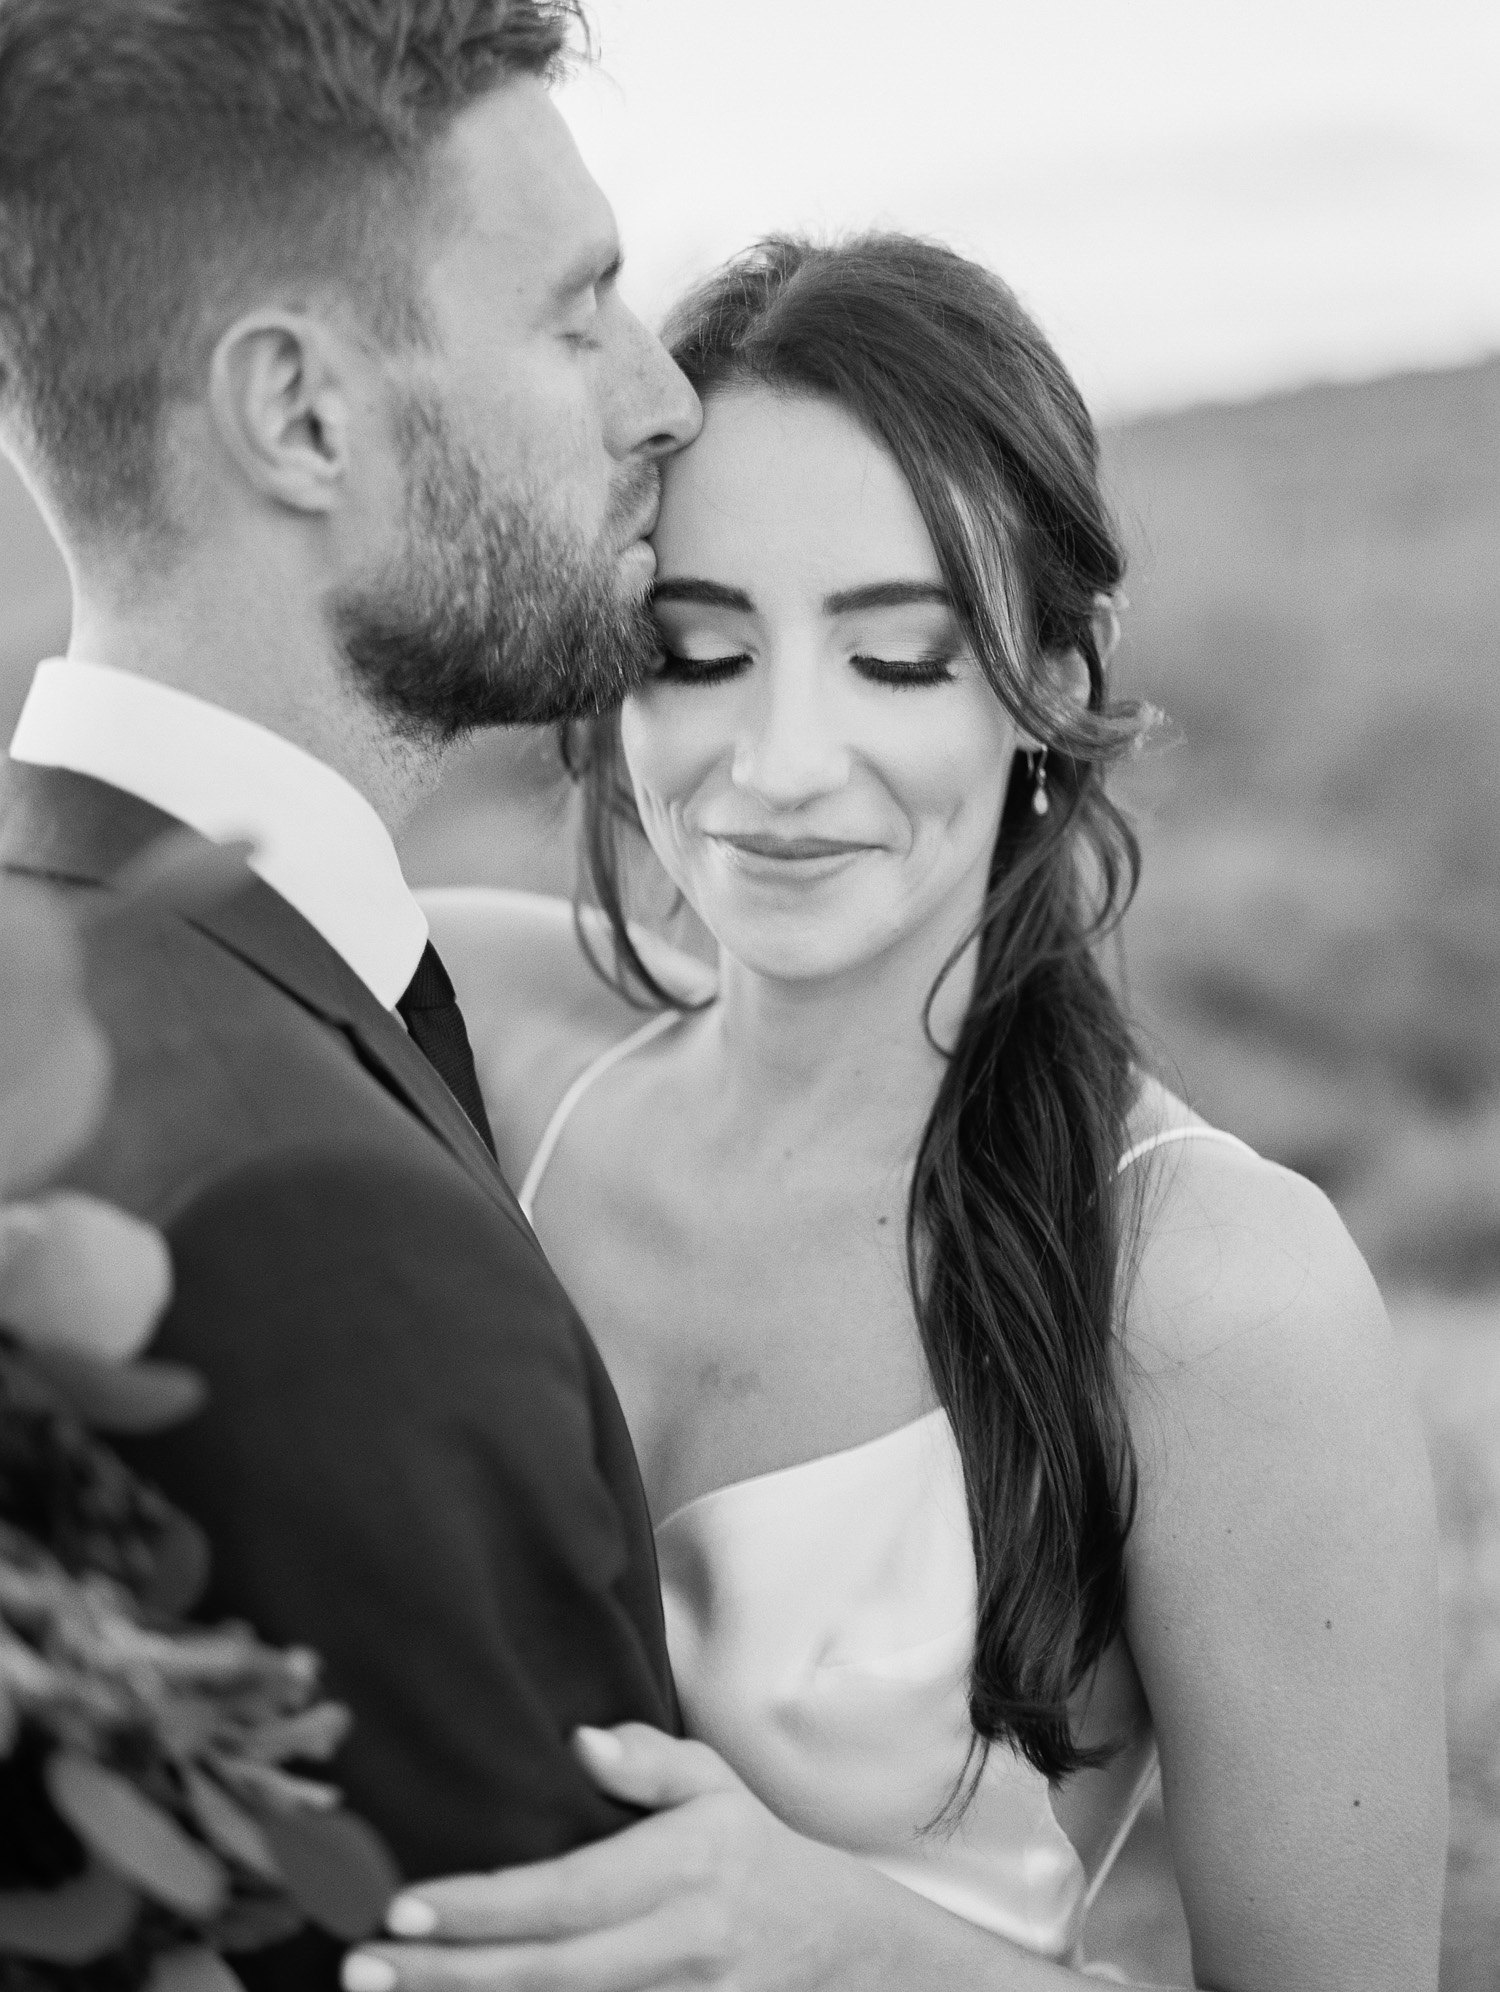 Such a sweet photo of groom kissing his new bride on the forehead at their Phoenix elopement.